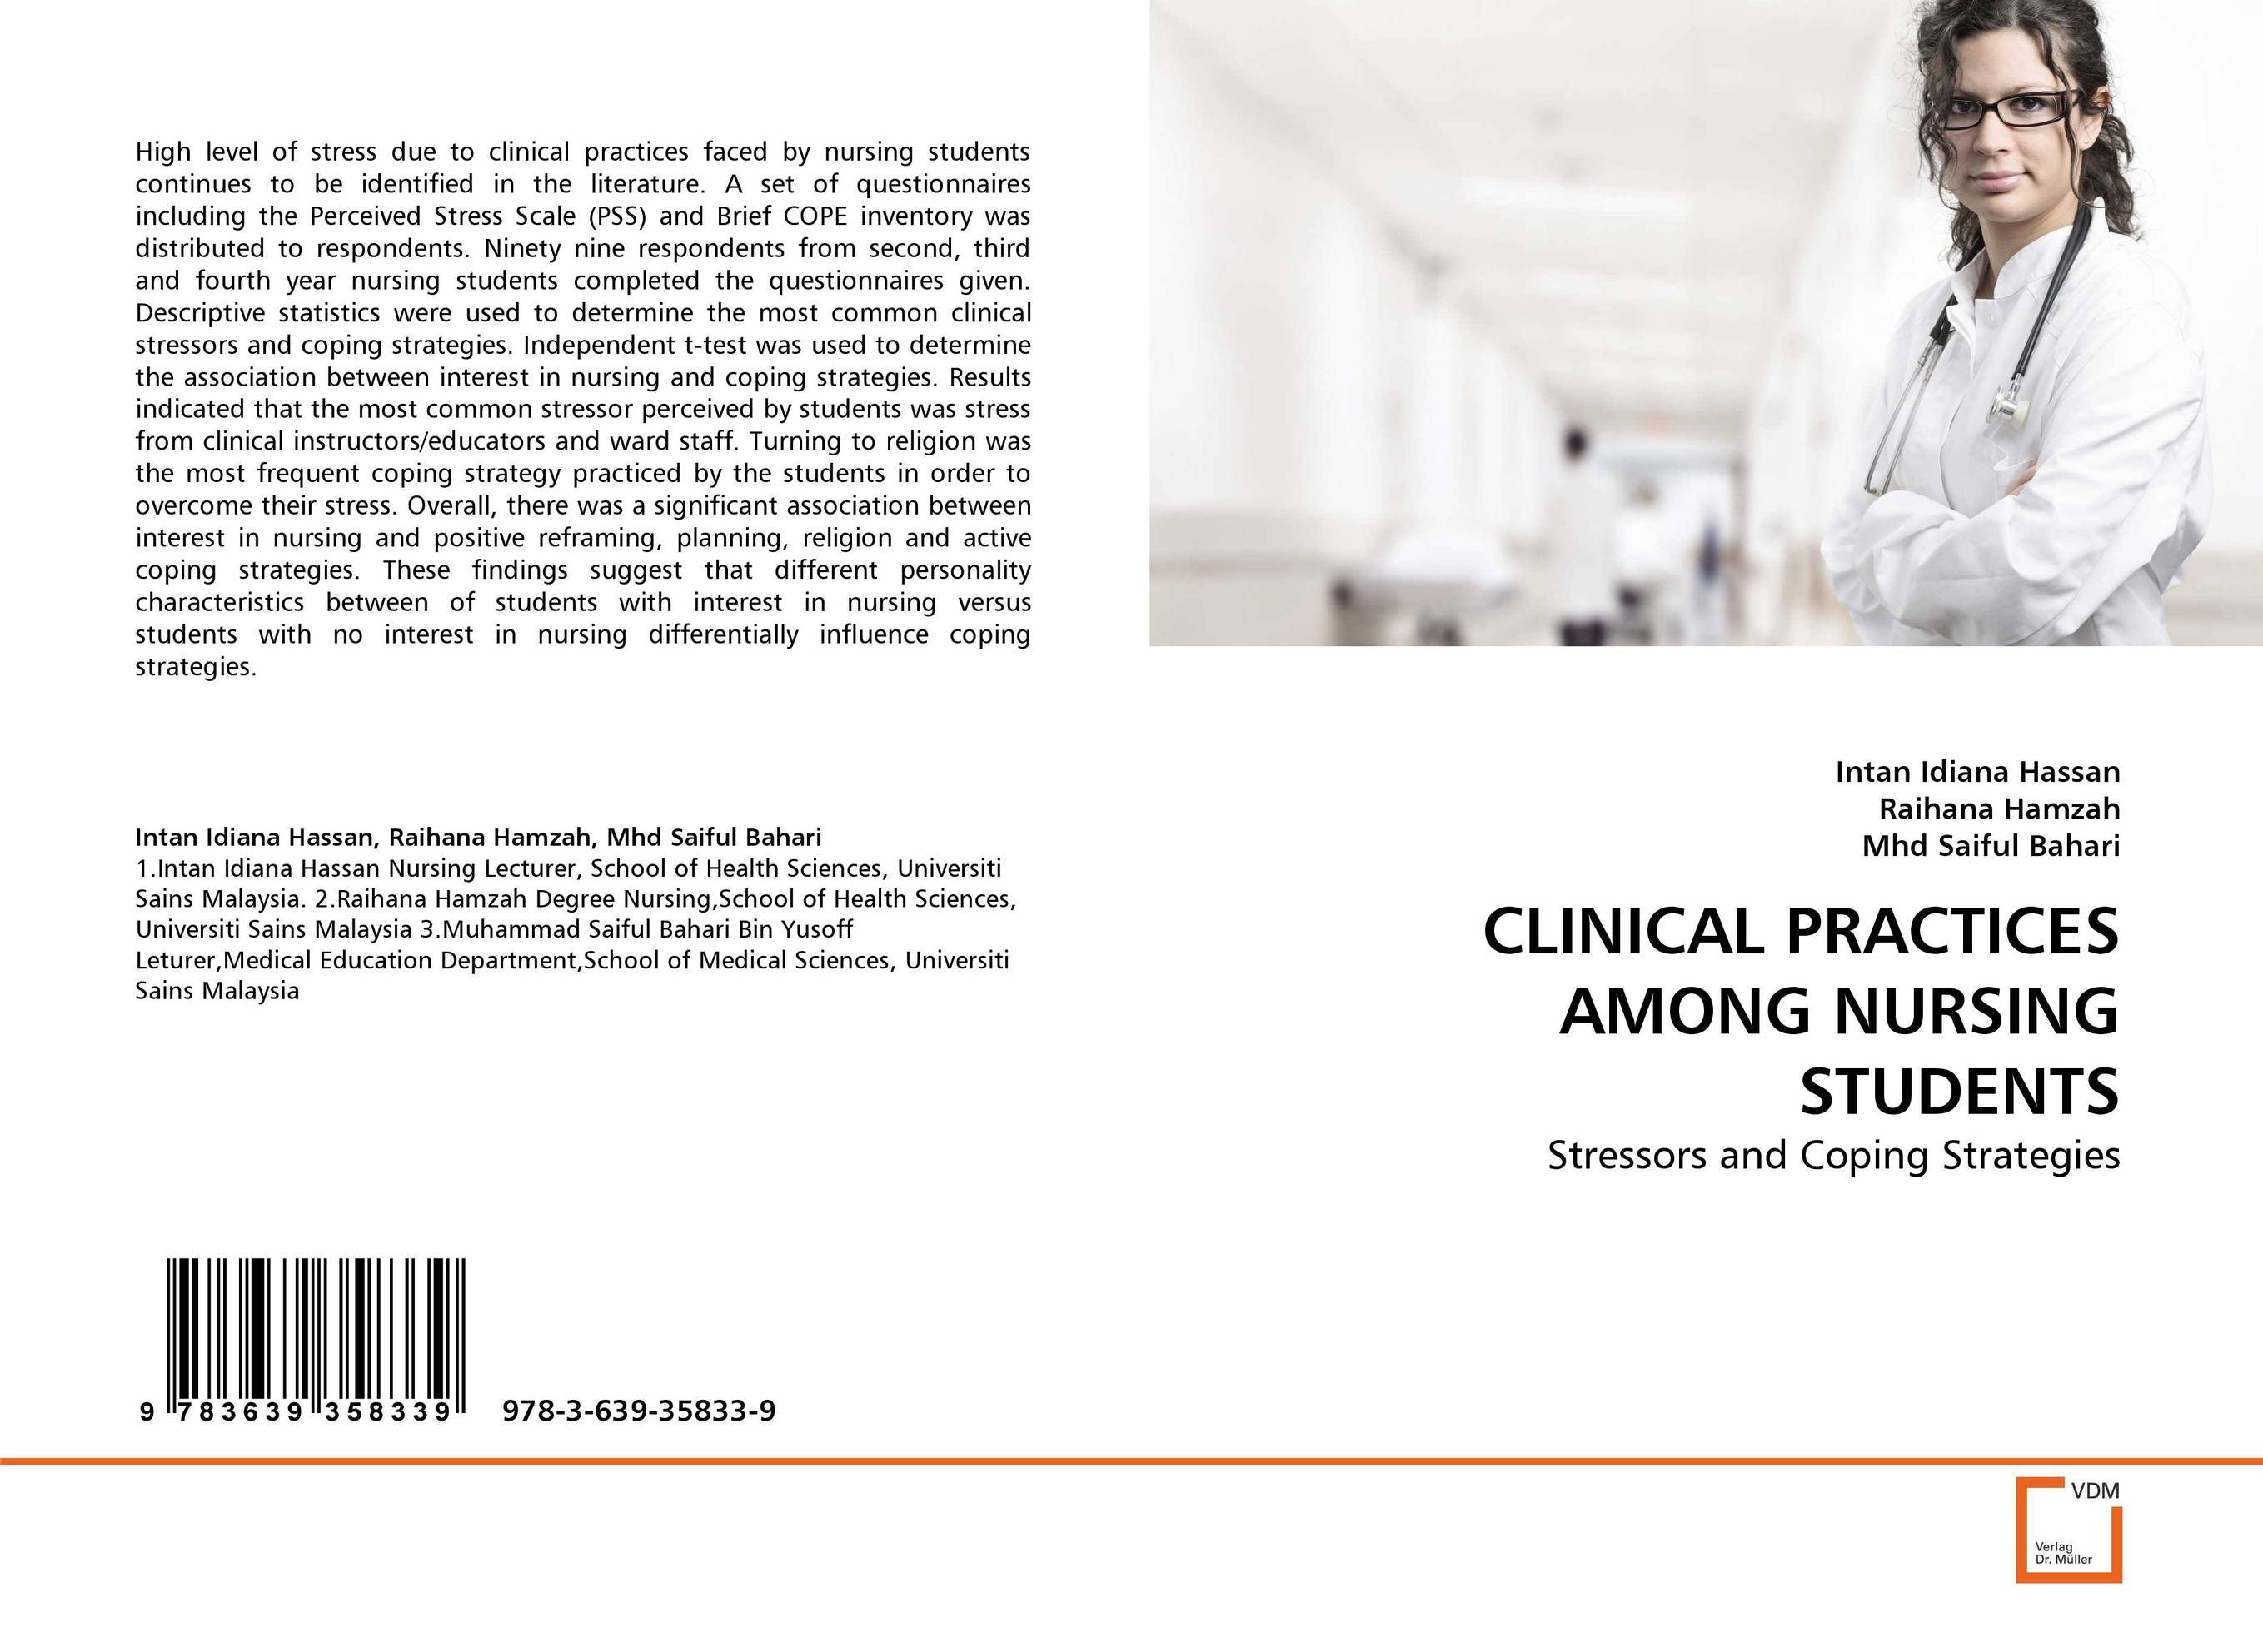 CLINICAL PRACTICES AMONG NURSING STUDENTS mazura bahari and mohd afiq mohd awang anaemia among mlt s students in uitm puncak alam malaysia